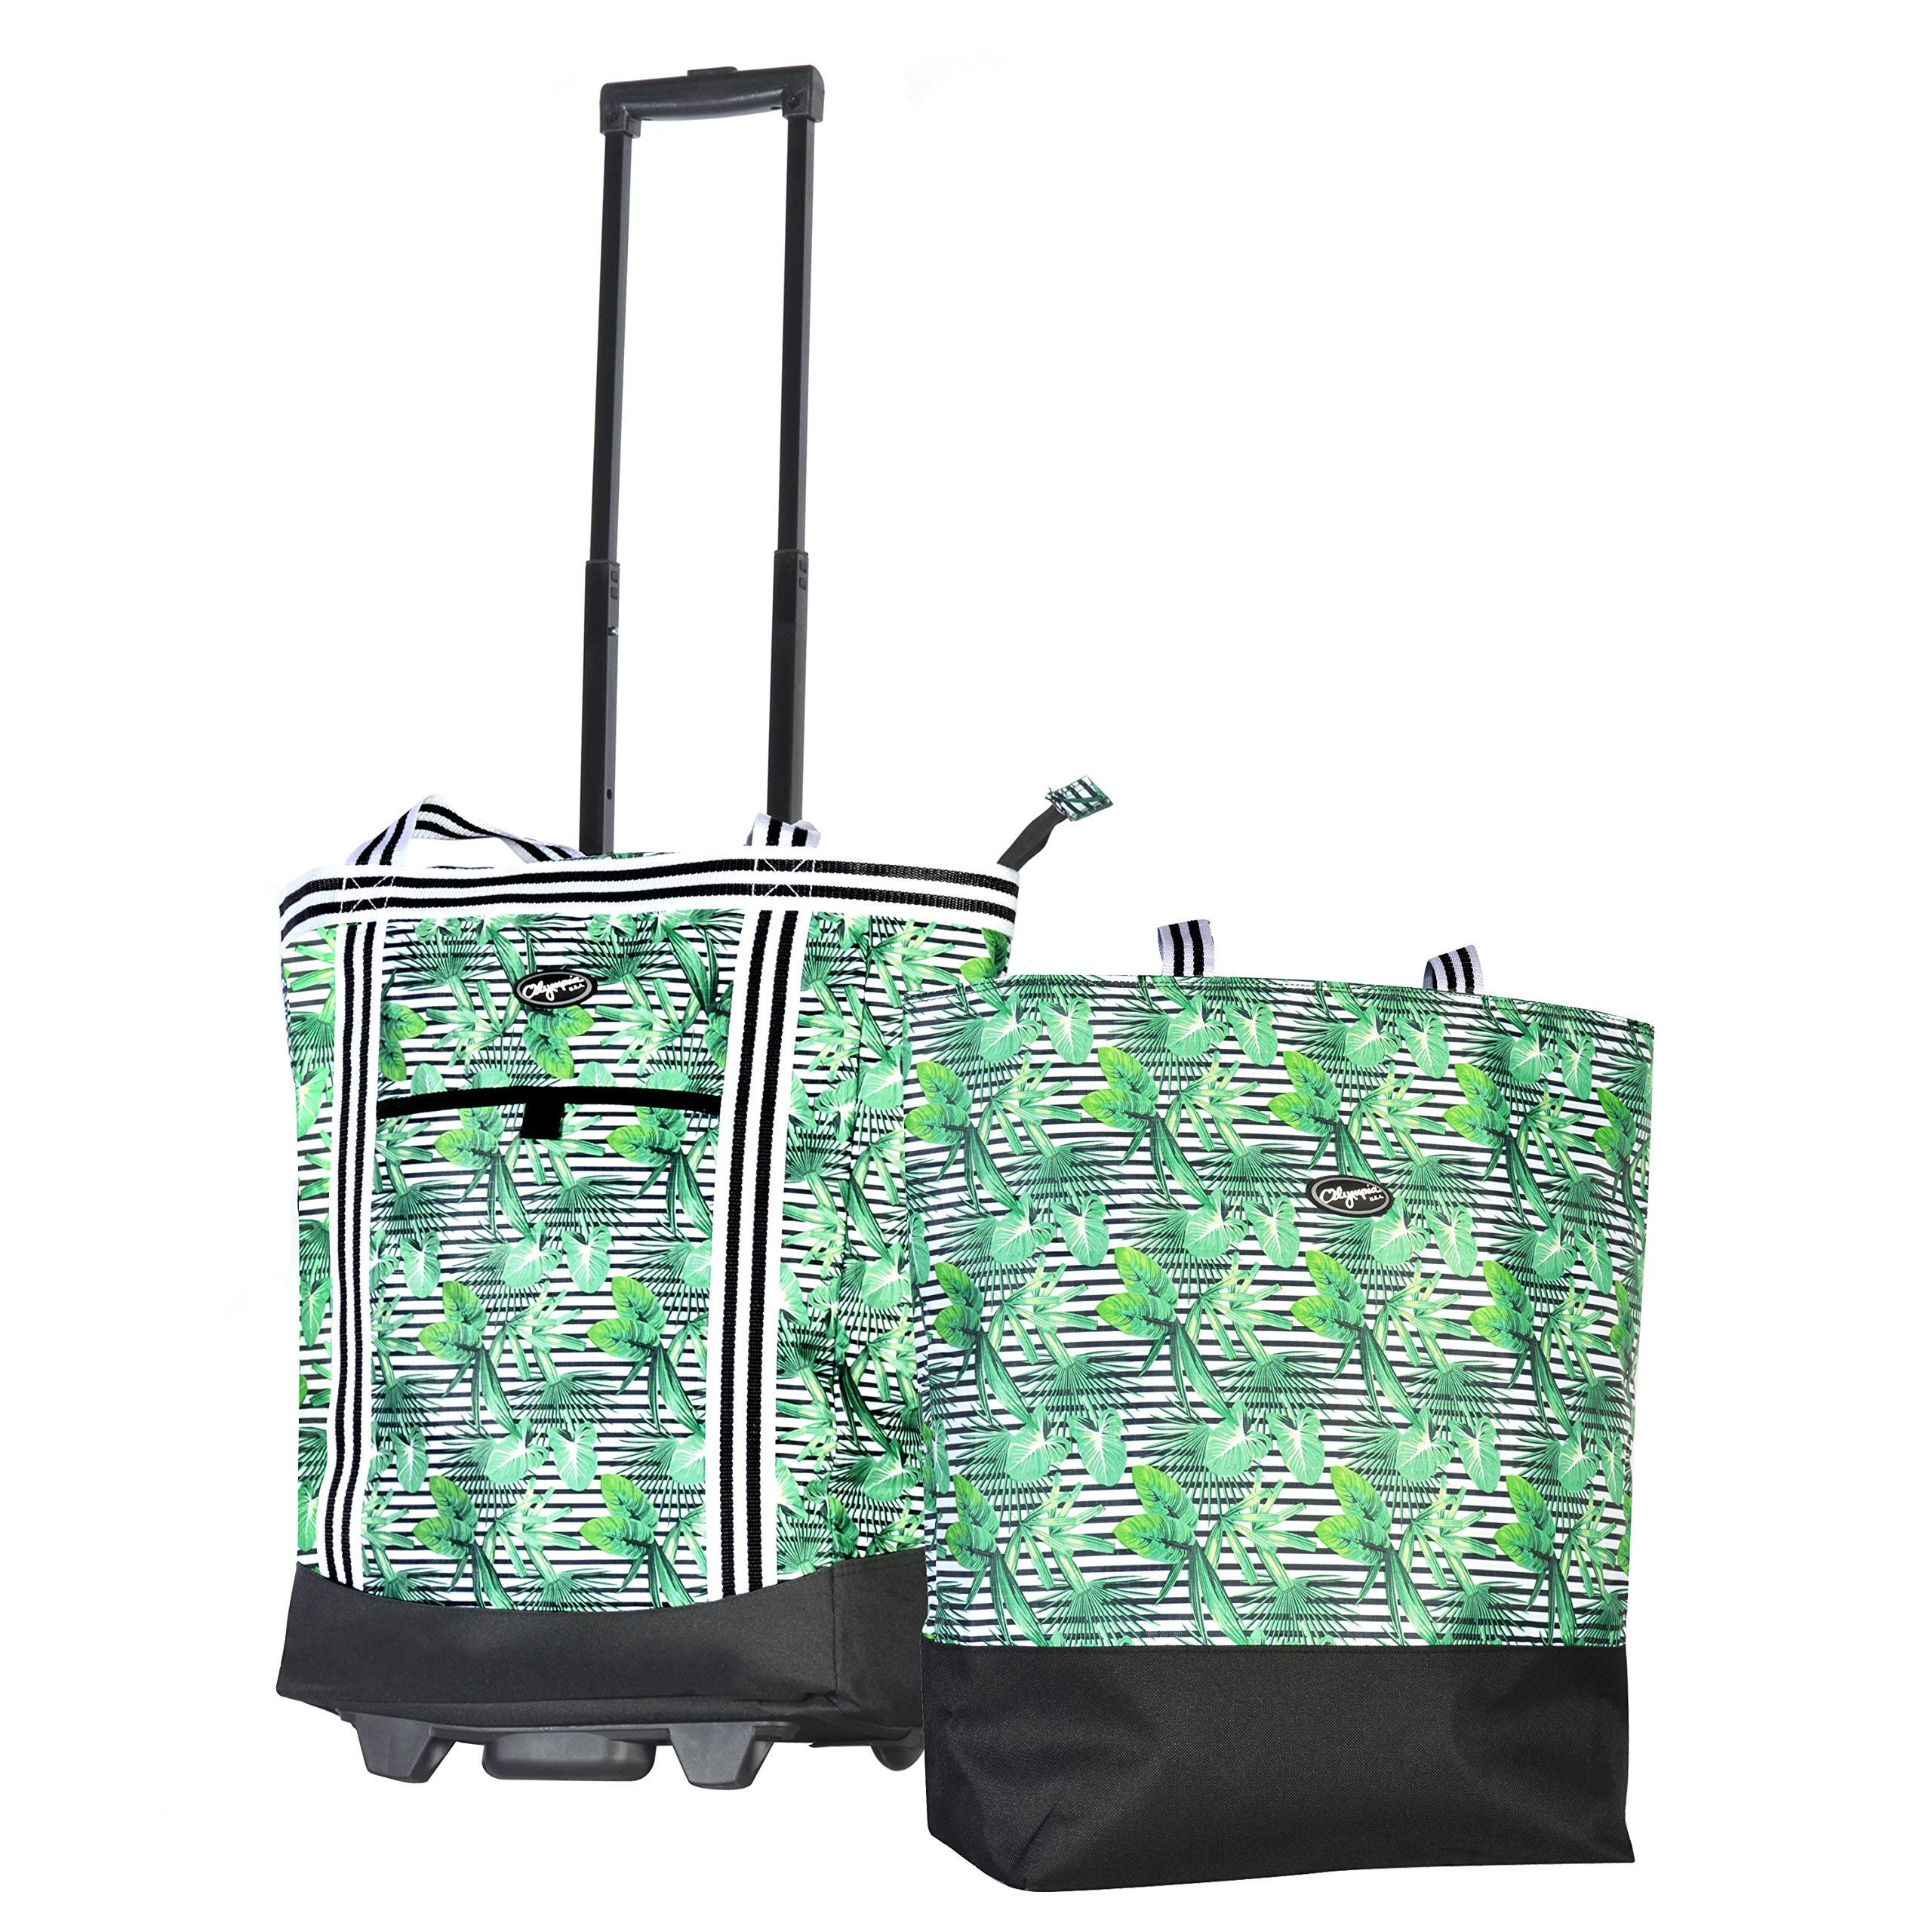 Olympia 2-Piece Rolling Shopper Tote and Cooler Bag, Rain Forest by Olympia (Image #1)